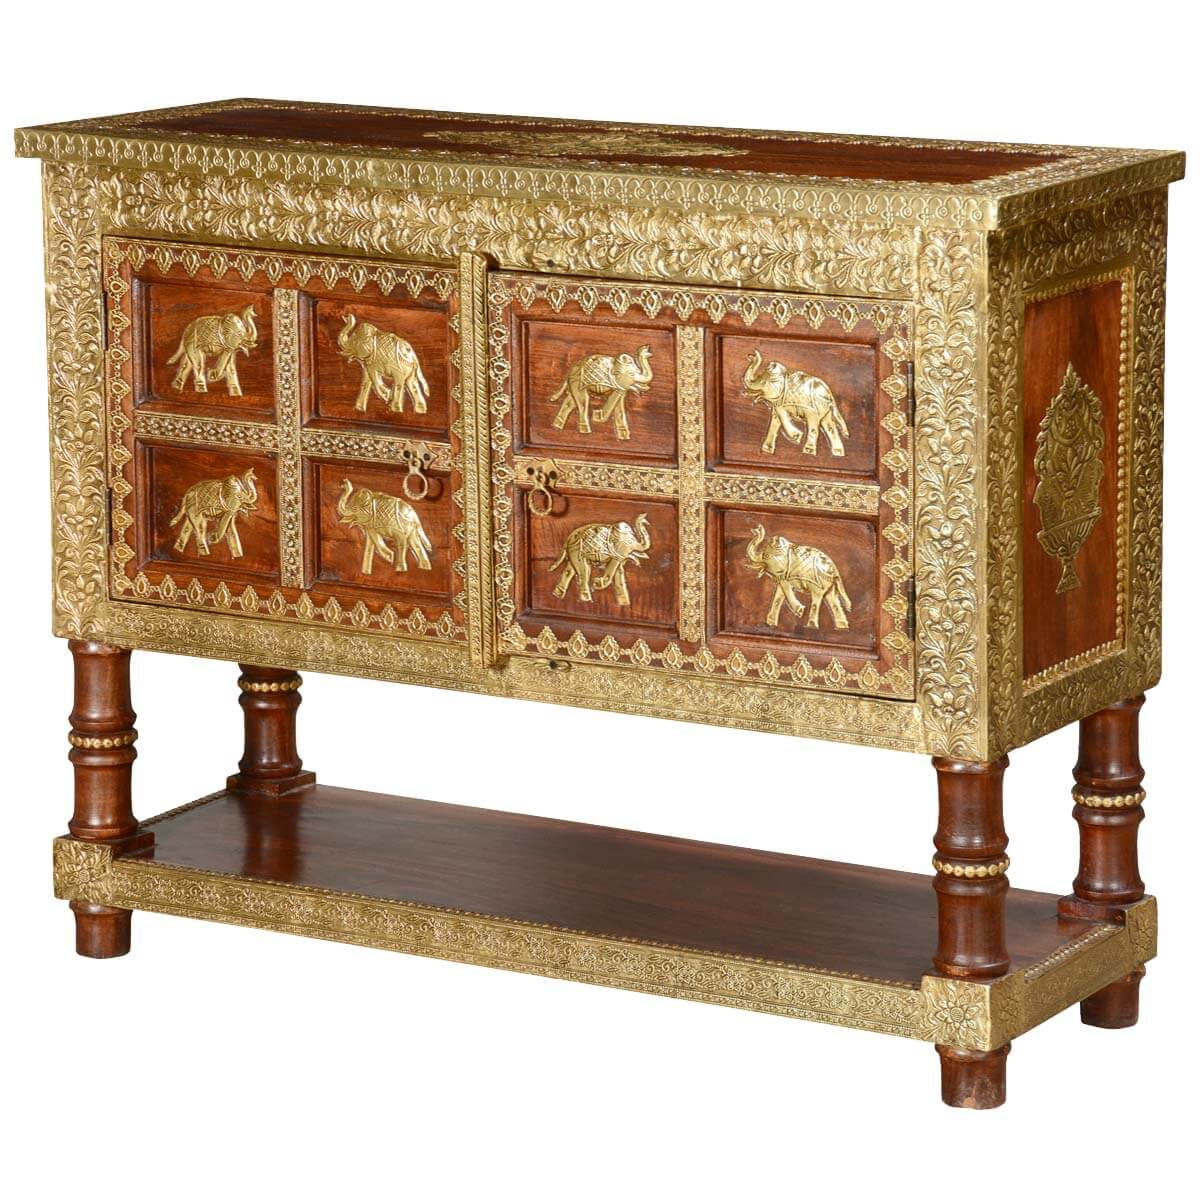 Golden elephants mango wood brass inlay console table chest 8 golden elephants mango wood brass inlay console table chest geotapseo Image collections